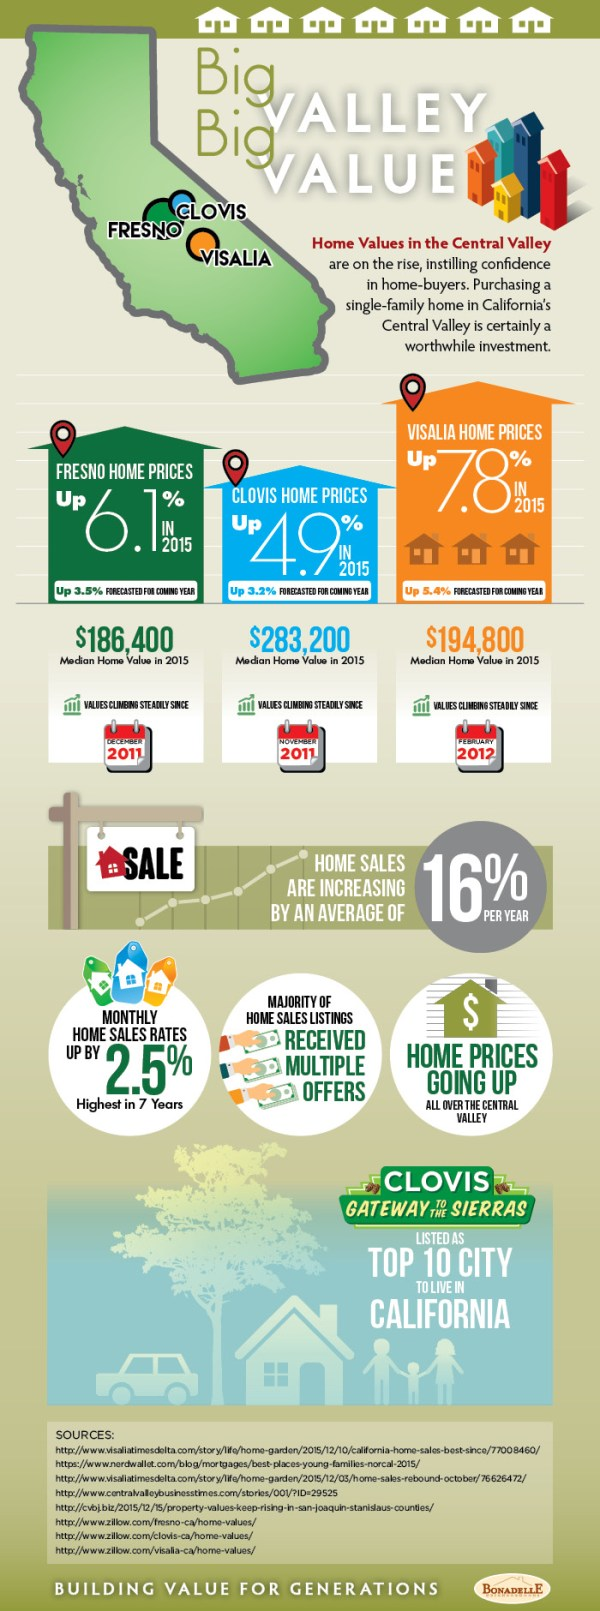 Big-Valley-Big-Value-infographic